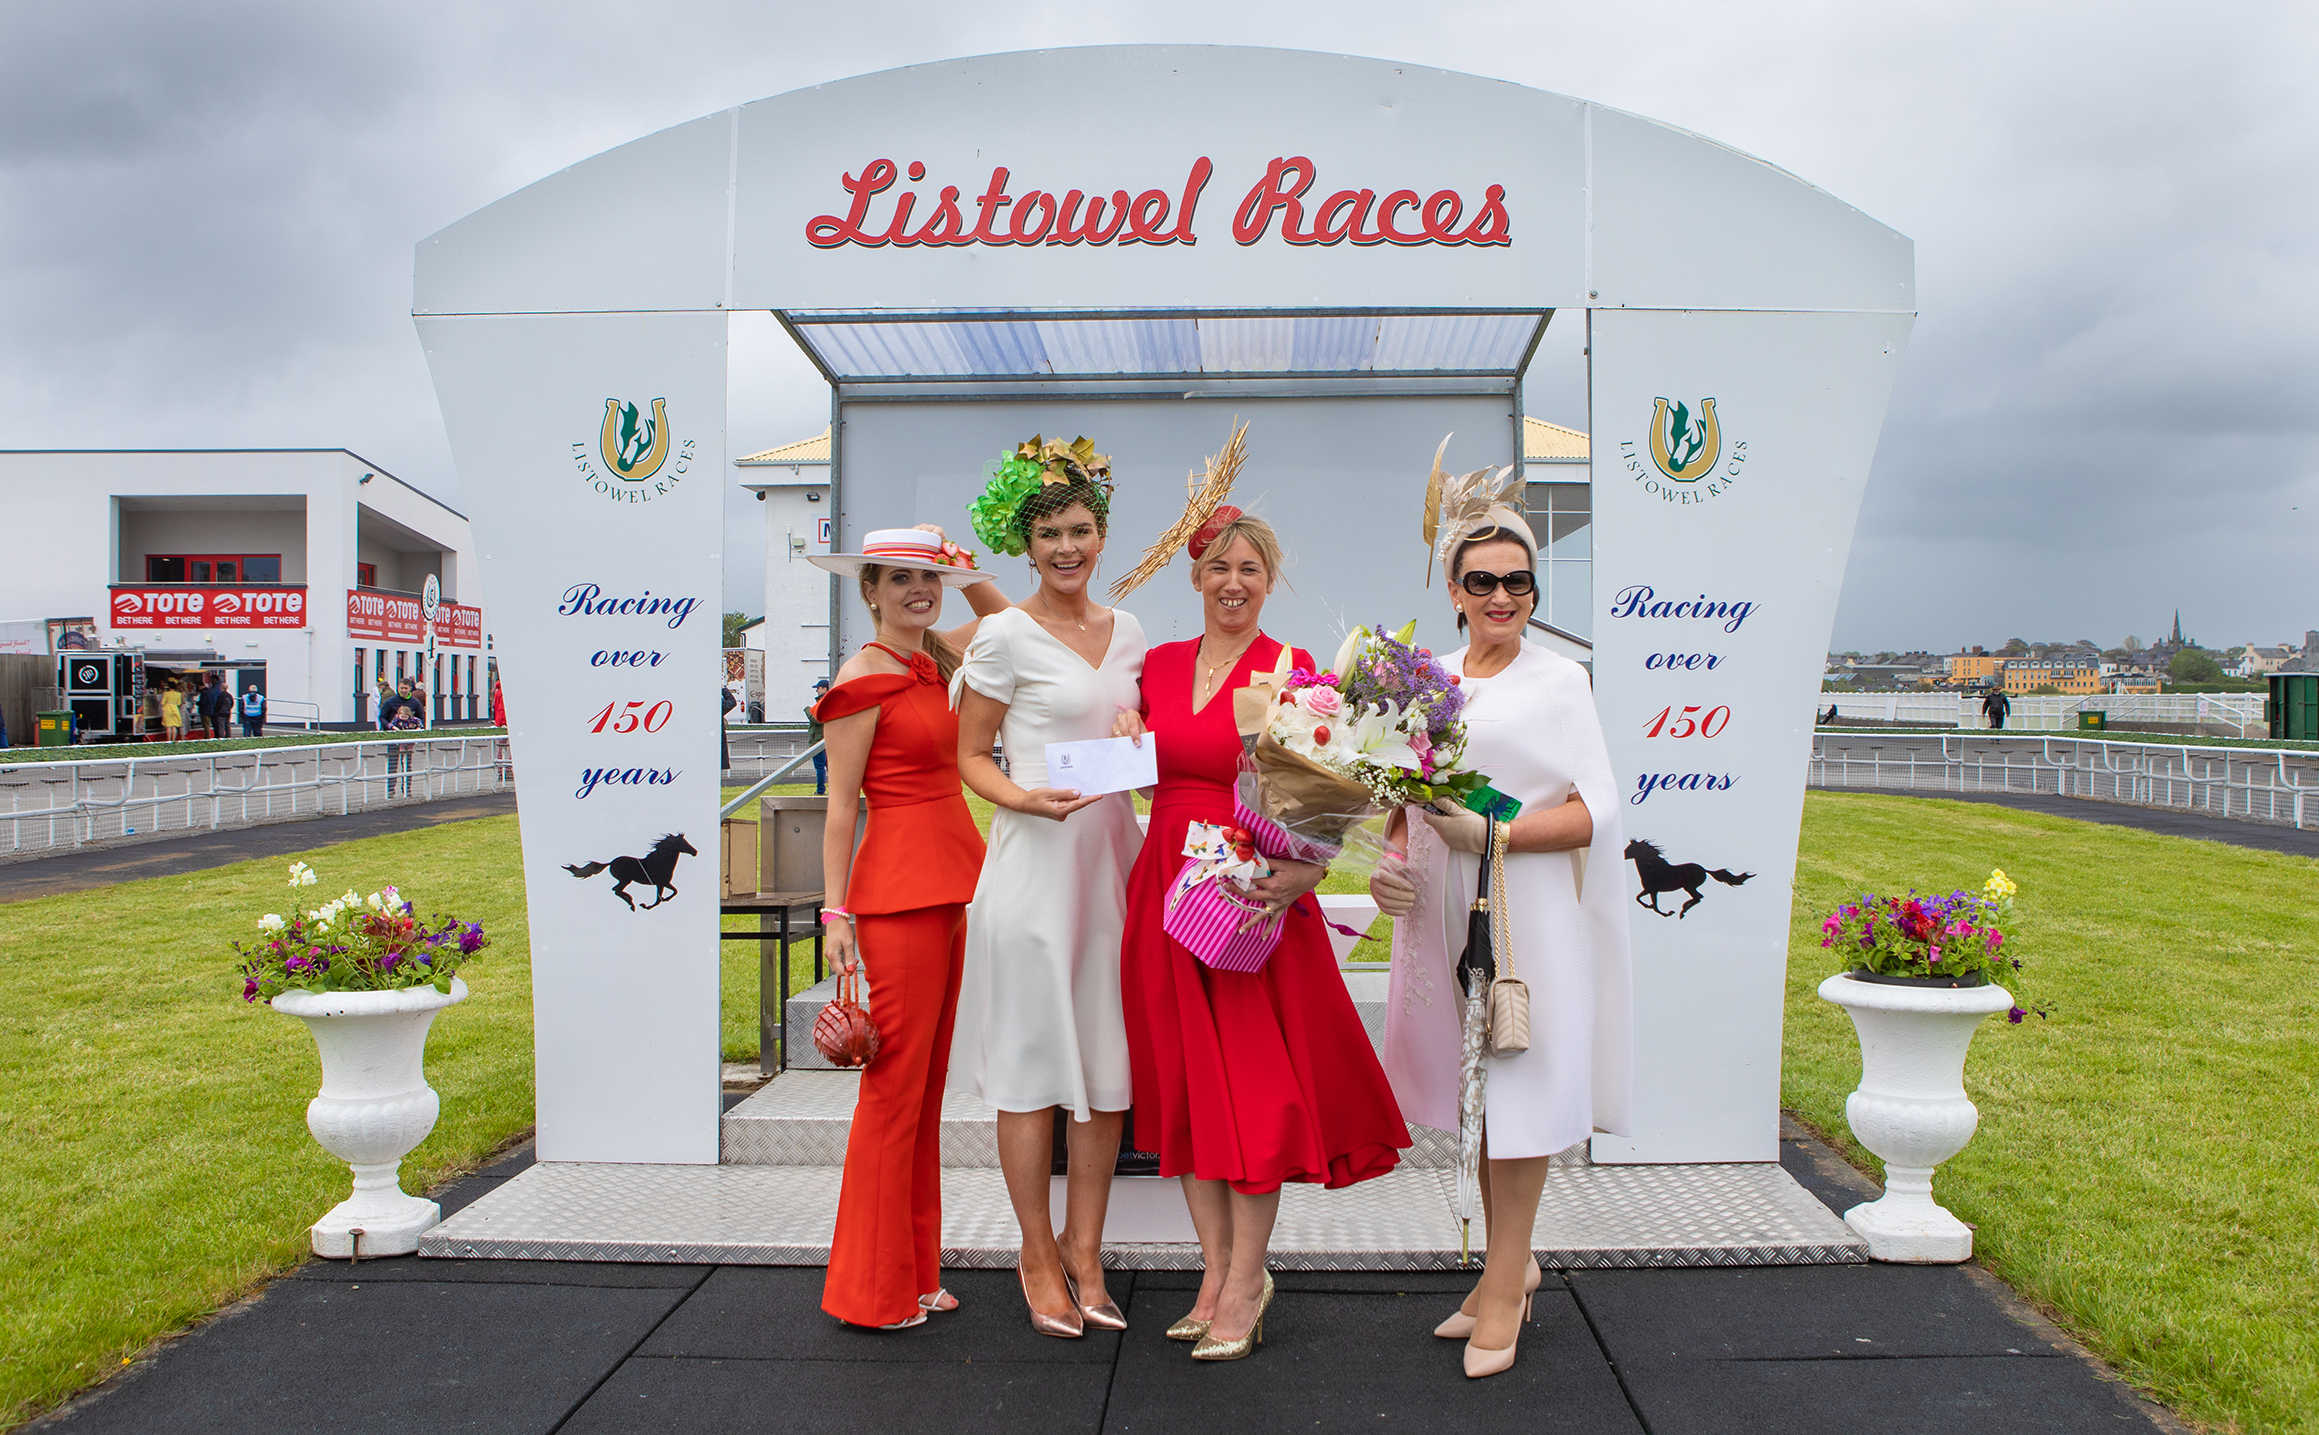 Ann-Marie Corbett, Helen Quealy Murphy, Aine Wall (overall winner) and Faith Amond at Listowel Races Ladies Day. Photo Credit: JK Photography